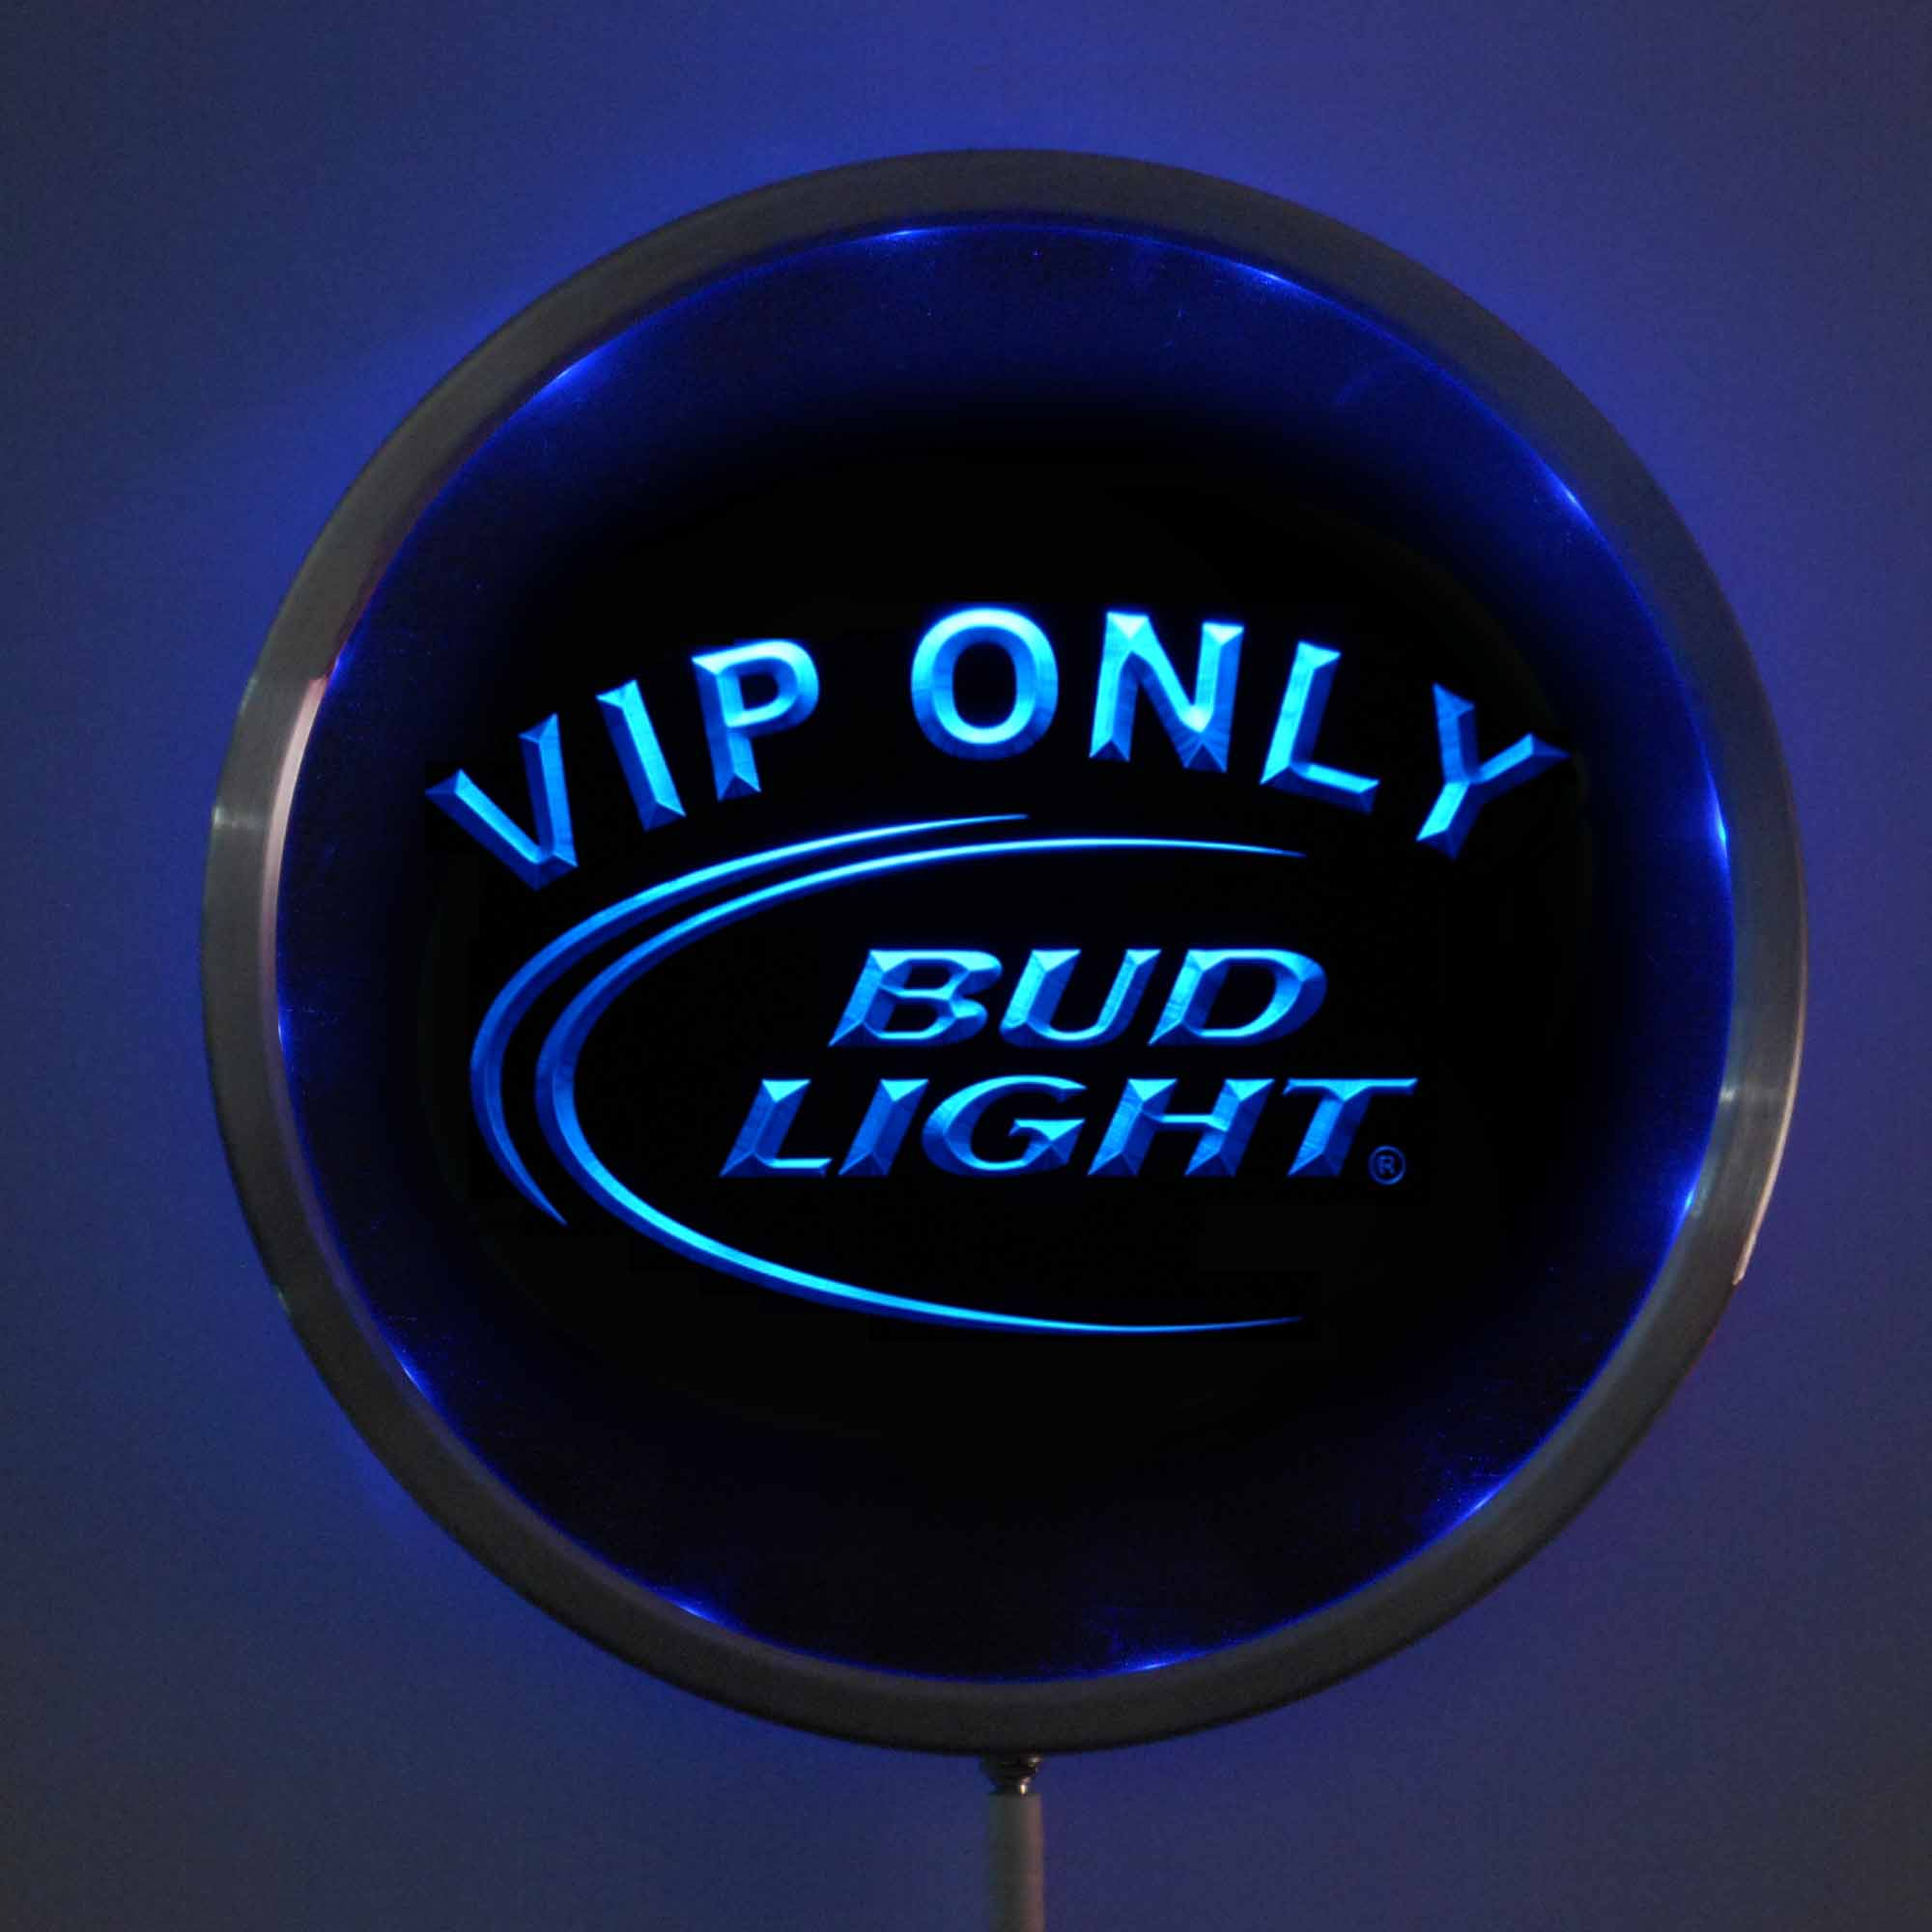 rs-0092 Bud <font><b>Light</b></font> VIP LED Neon Round Signs 25cm/ 10 Inch - Bar Sign with RGB Multi-Color Remote Wireless Control Function